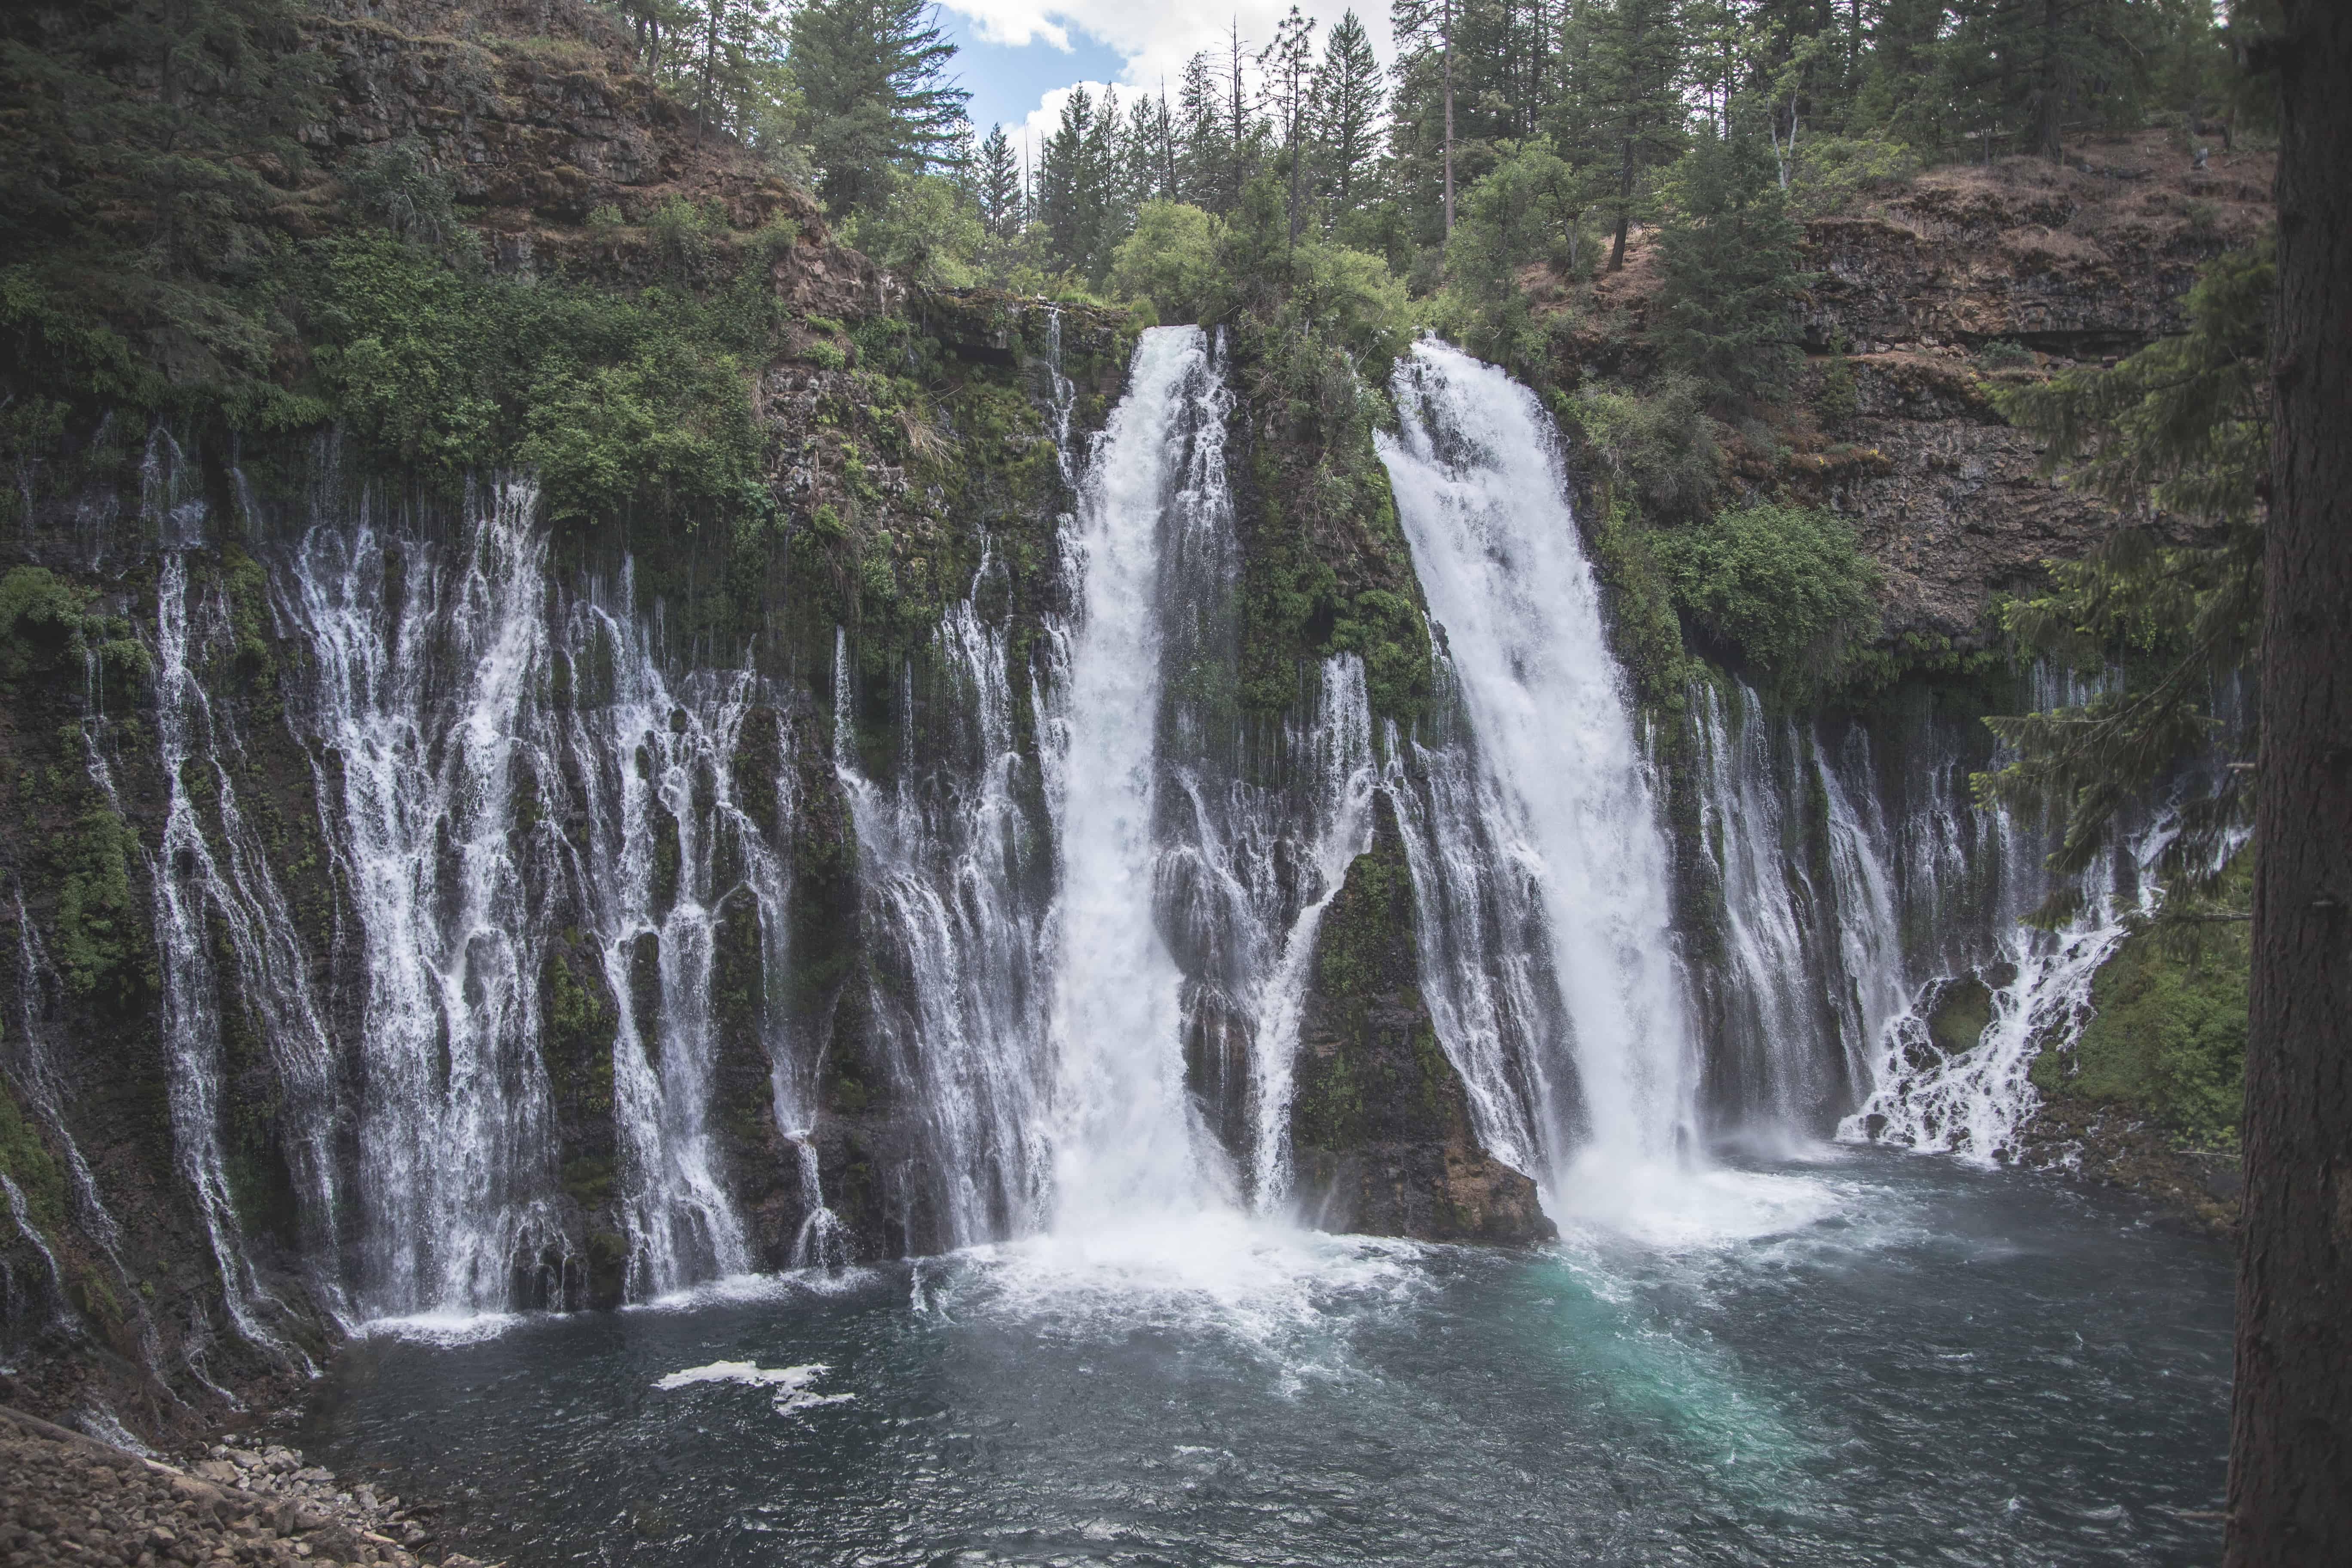 Burney Falls in McArthur-Burney Memorial State Park in Northern California is a great fall destination!